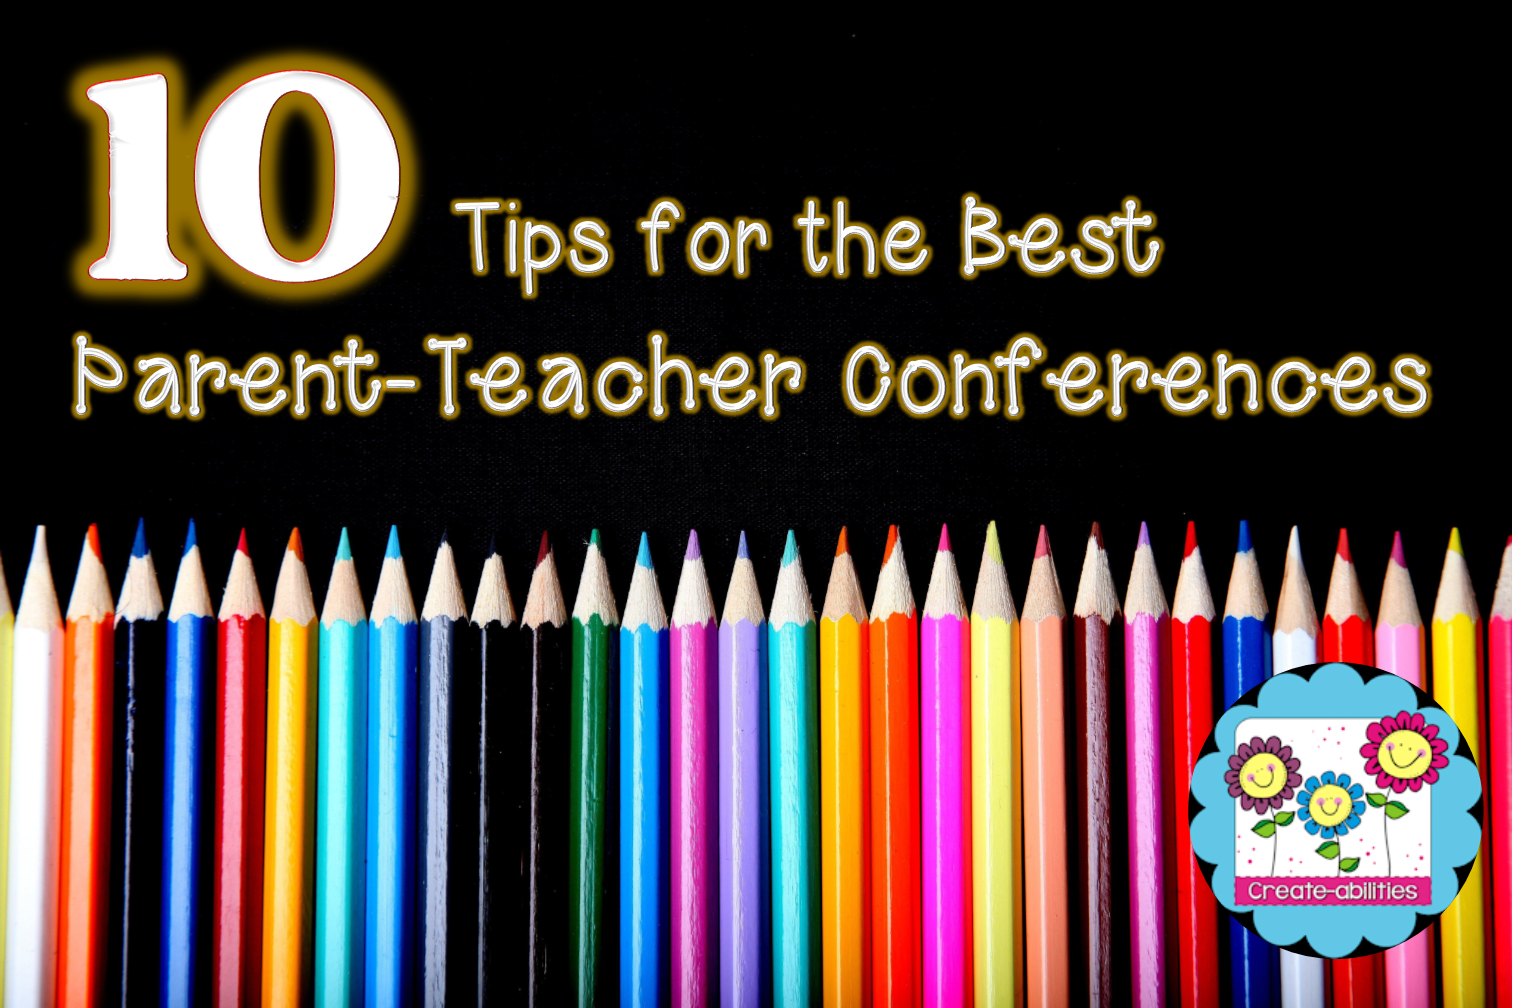 http://www.teacherspayteachers.com/Product/Parent-Teacher-Conference-MEGA-Pack-1449609